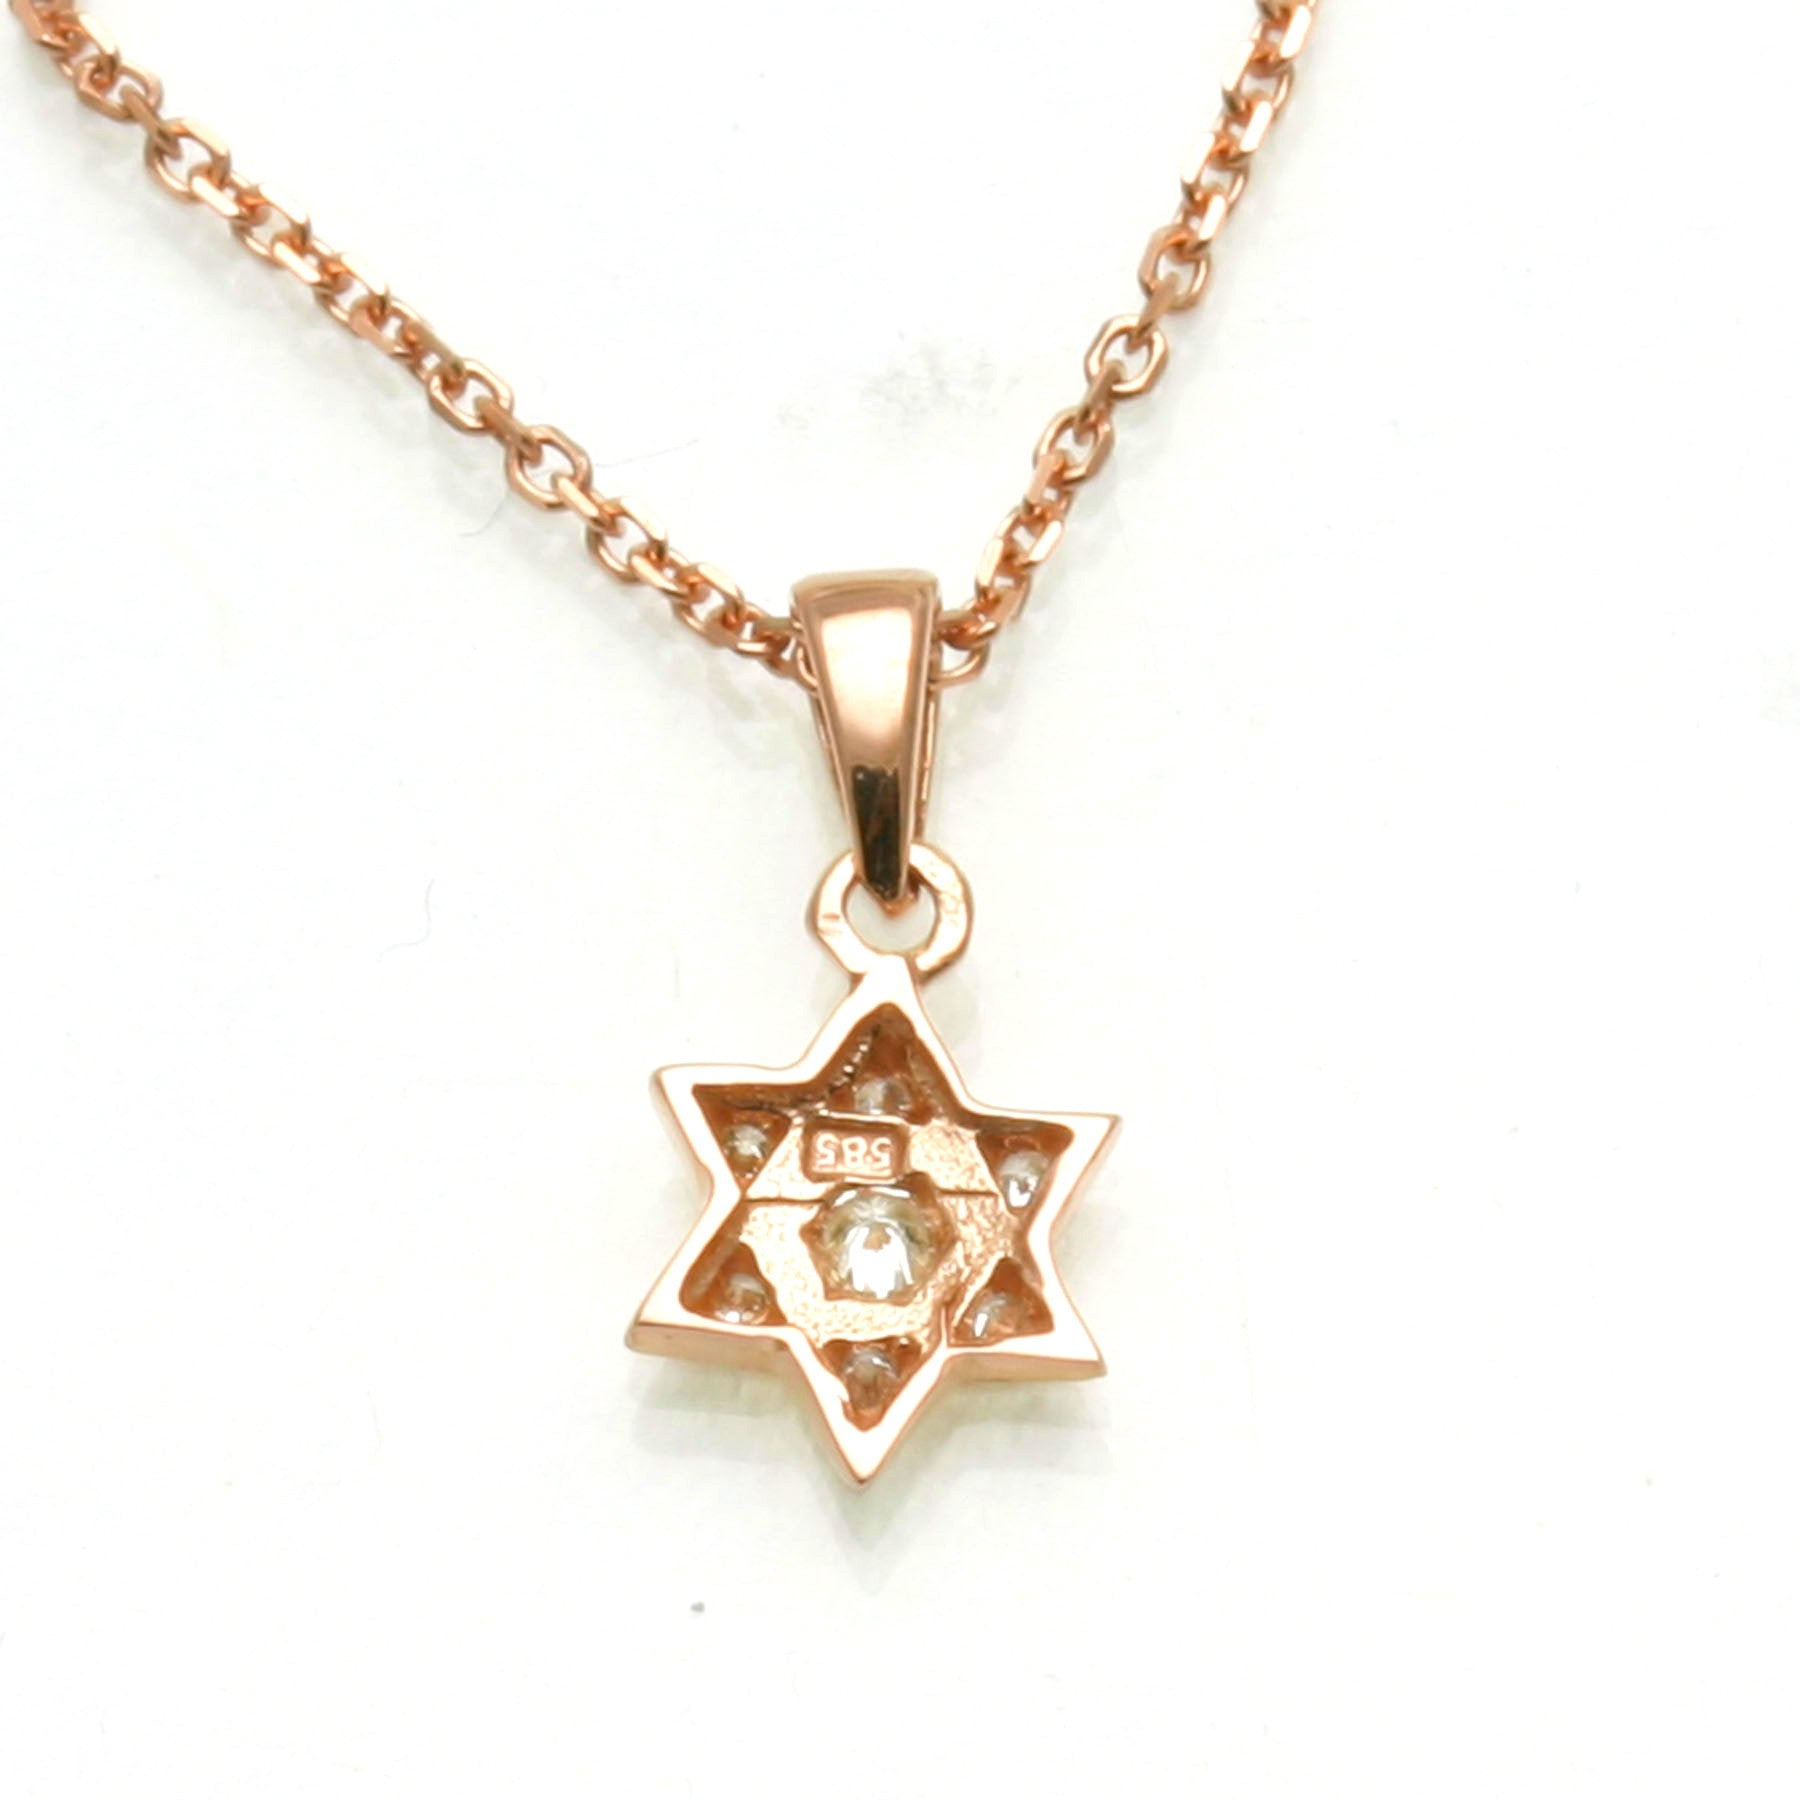 14K Yellow Gold /& Rose Gold Jewish Star of David with Menorah Pendant Necklace